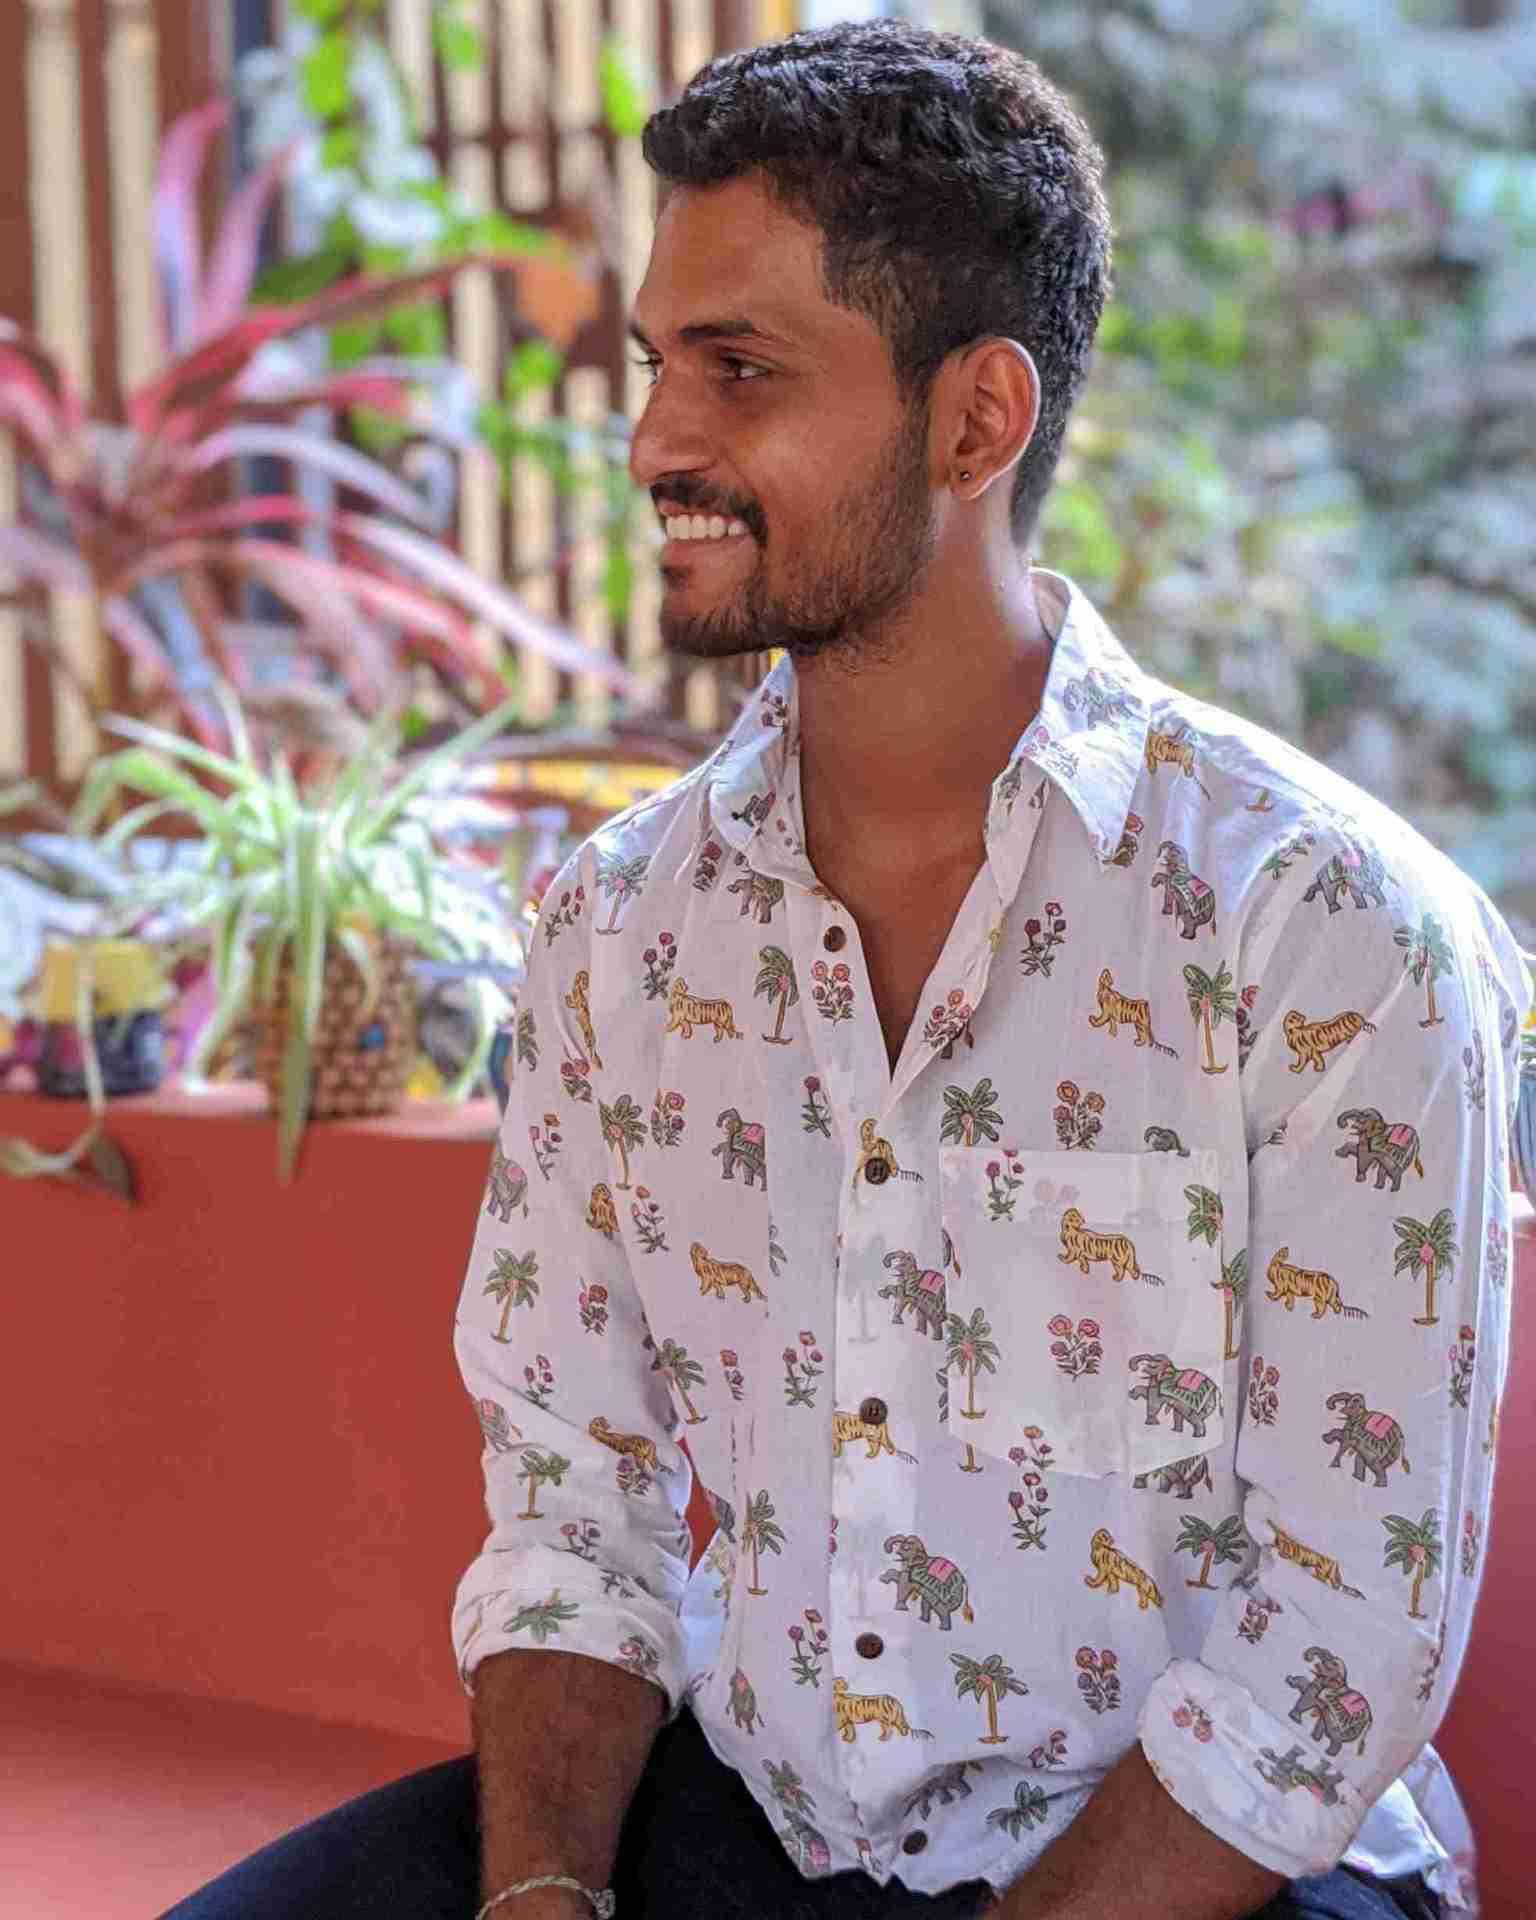 Tigers in the jungle print cotton shirt by Siesta o'Clock